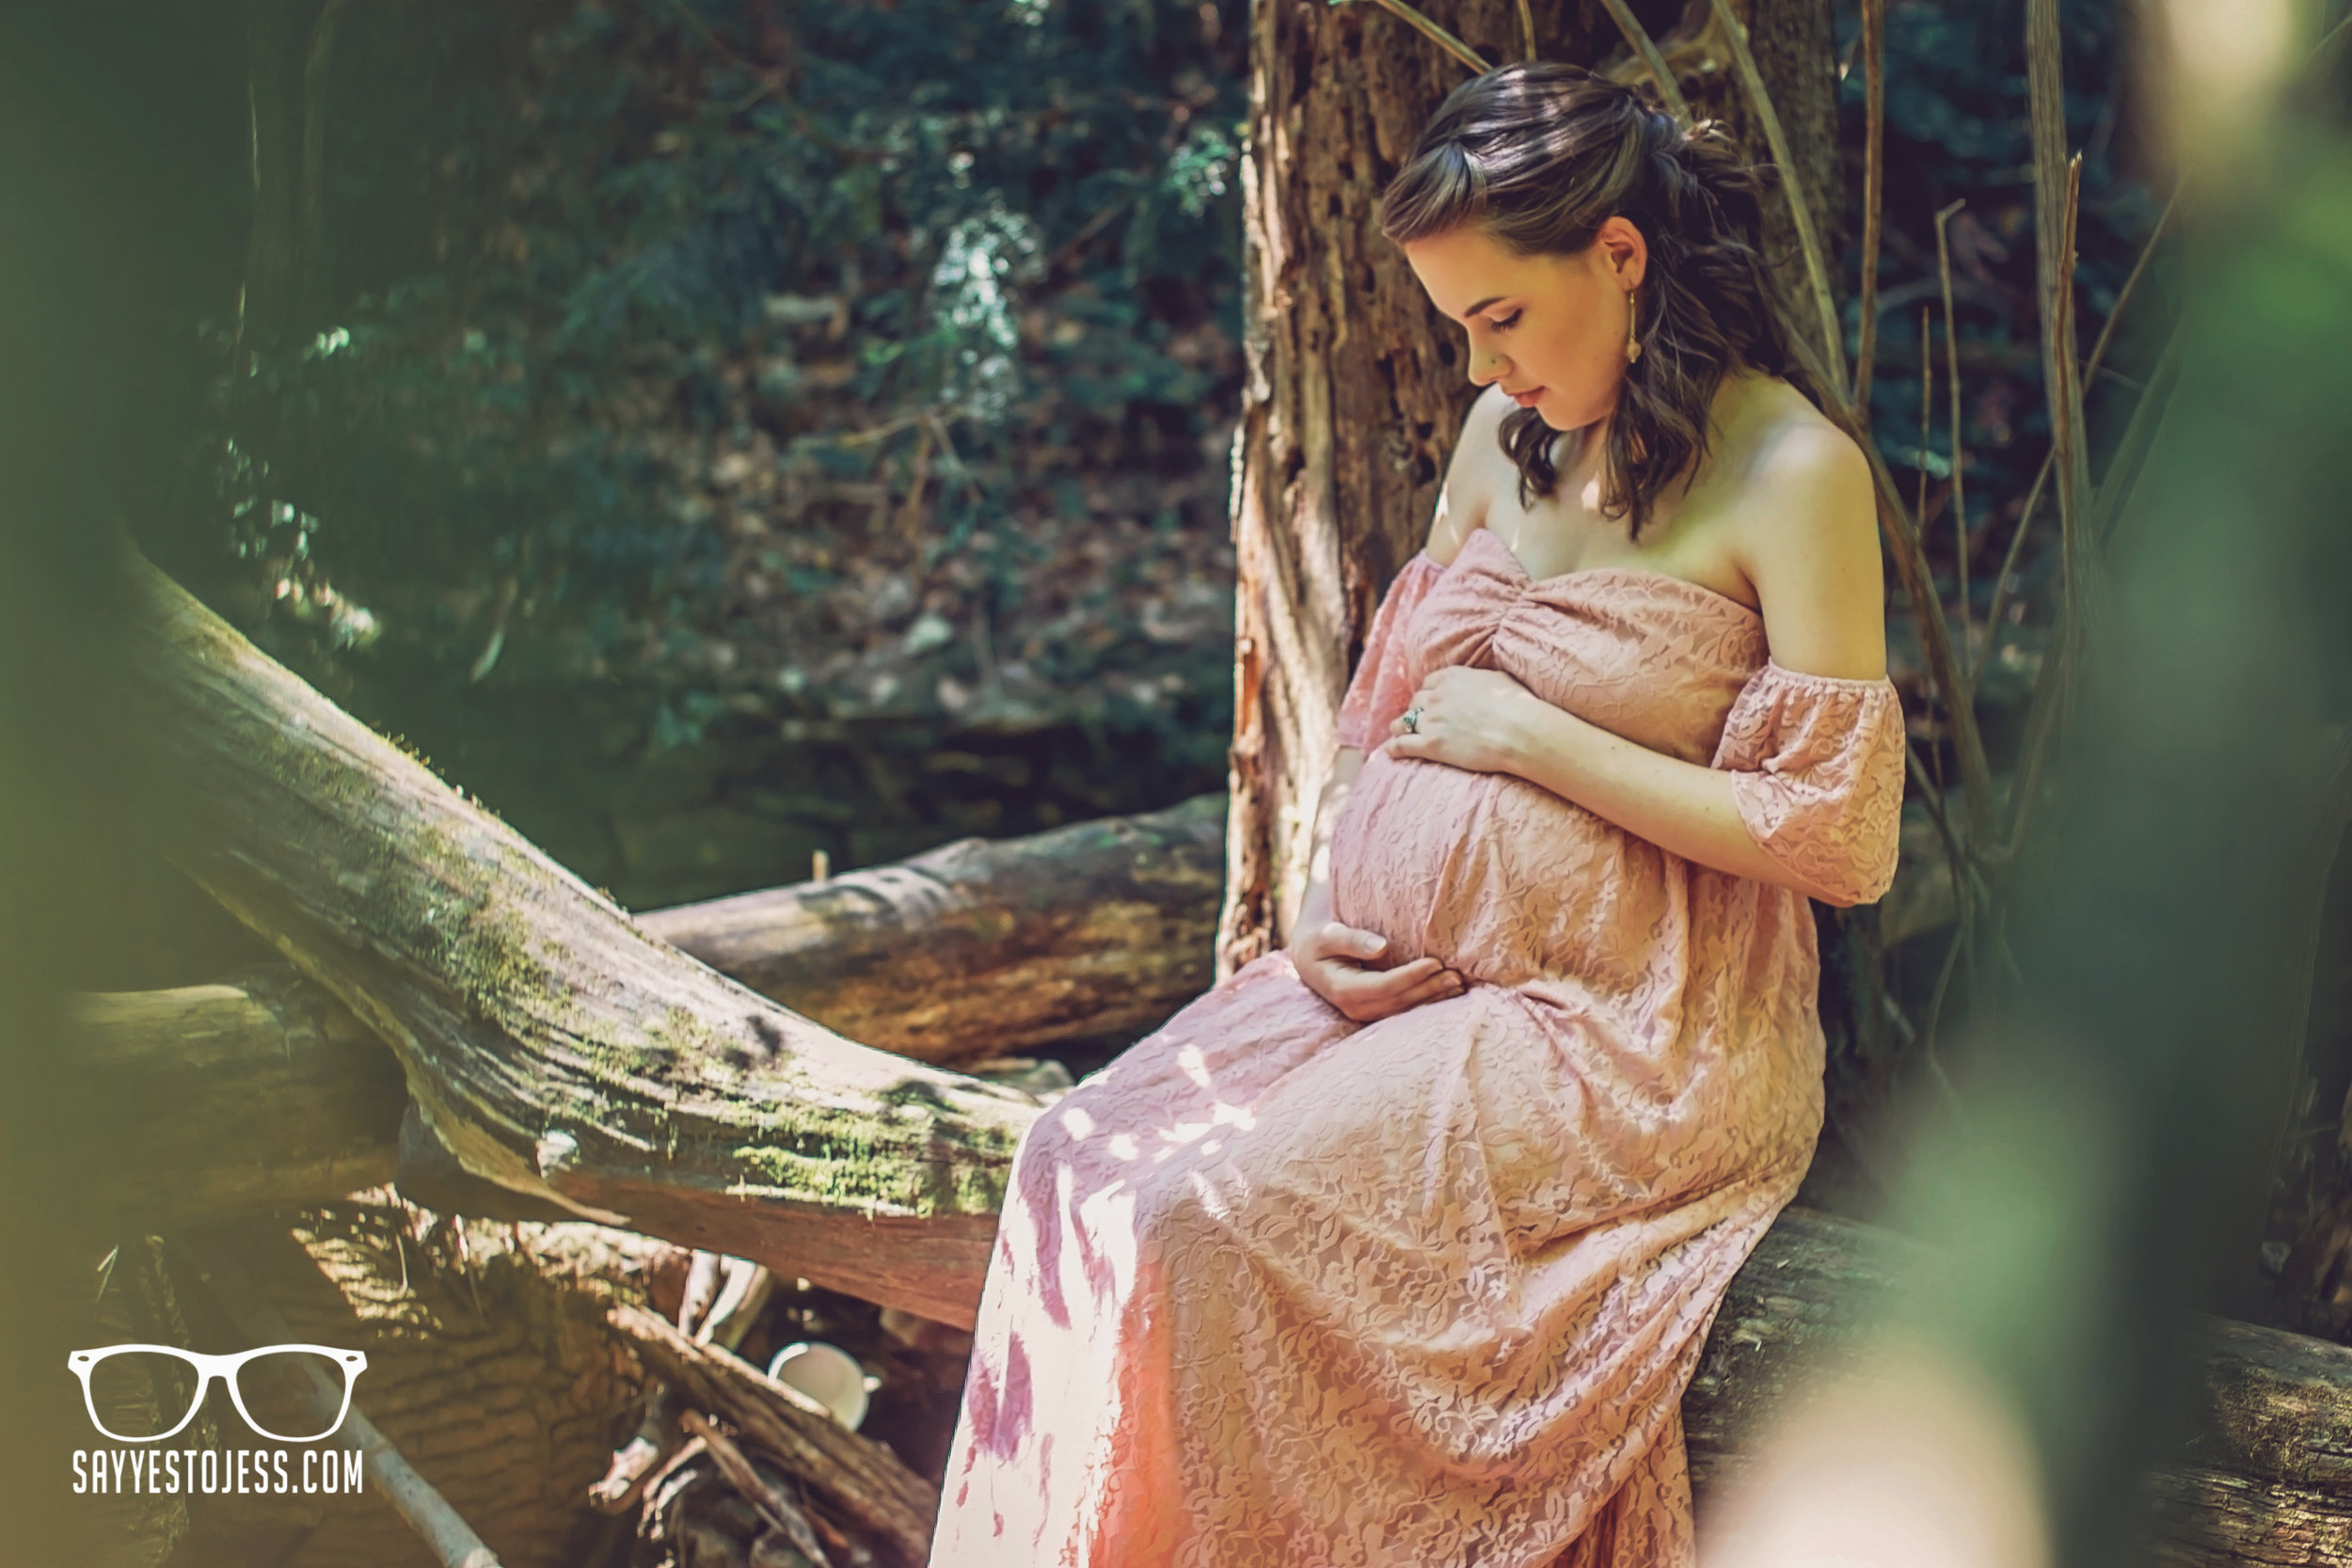 Maternity Photography in Cincinnati Ohio by Jess Summers of Say Yes To Jess.jpg